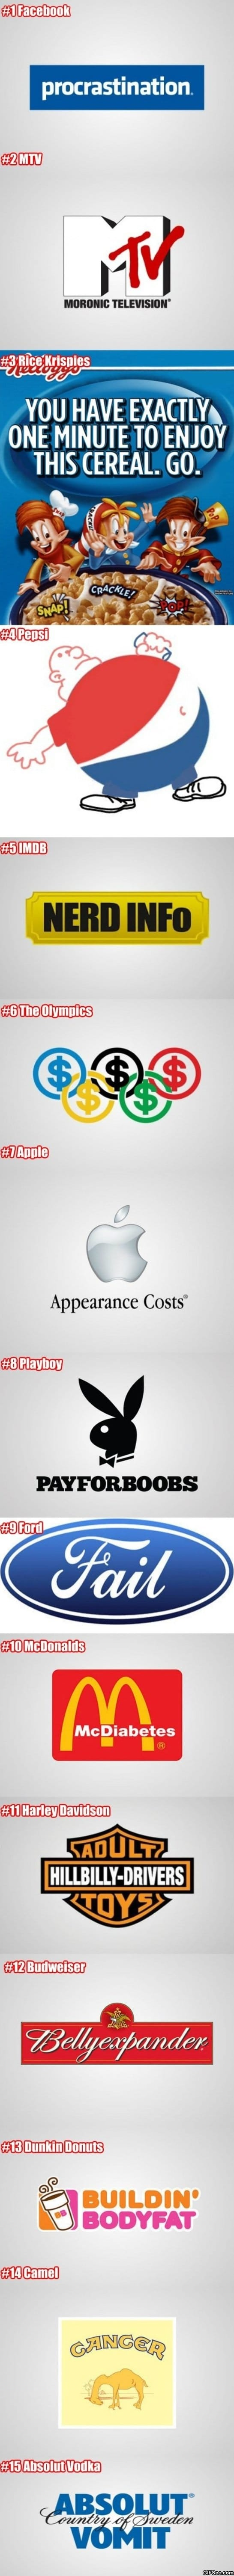 funny-pictures-if-logos-were-honest